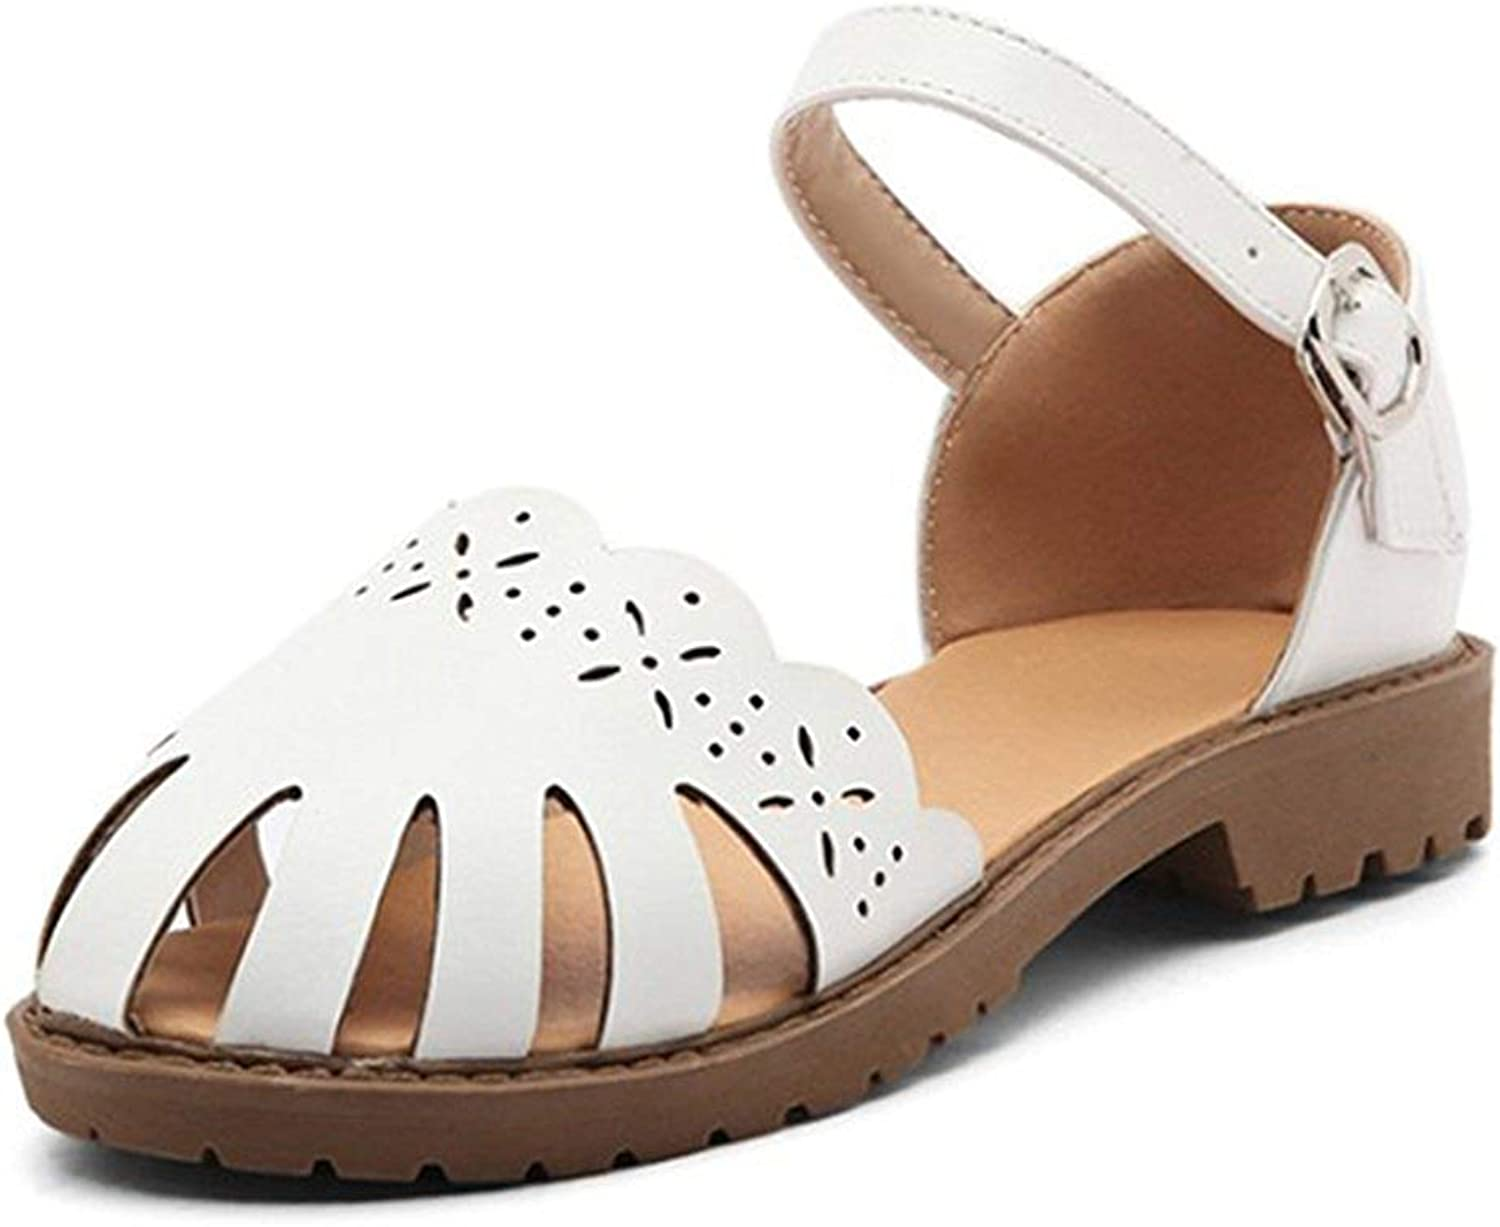 Lelehwhge Women's Comfy Round Closed Toe Cut Out Buckle Ankle Strap Flats Sandals White 8 M US